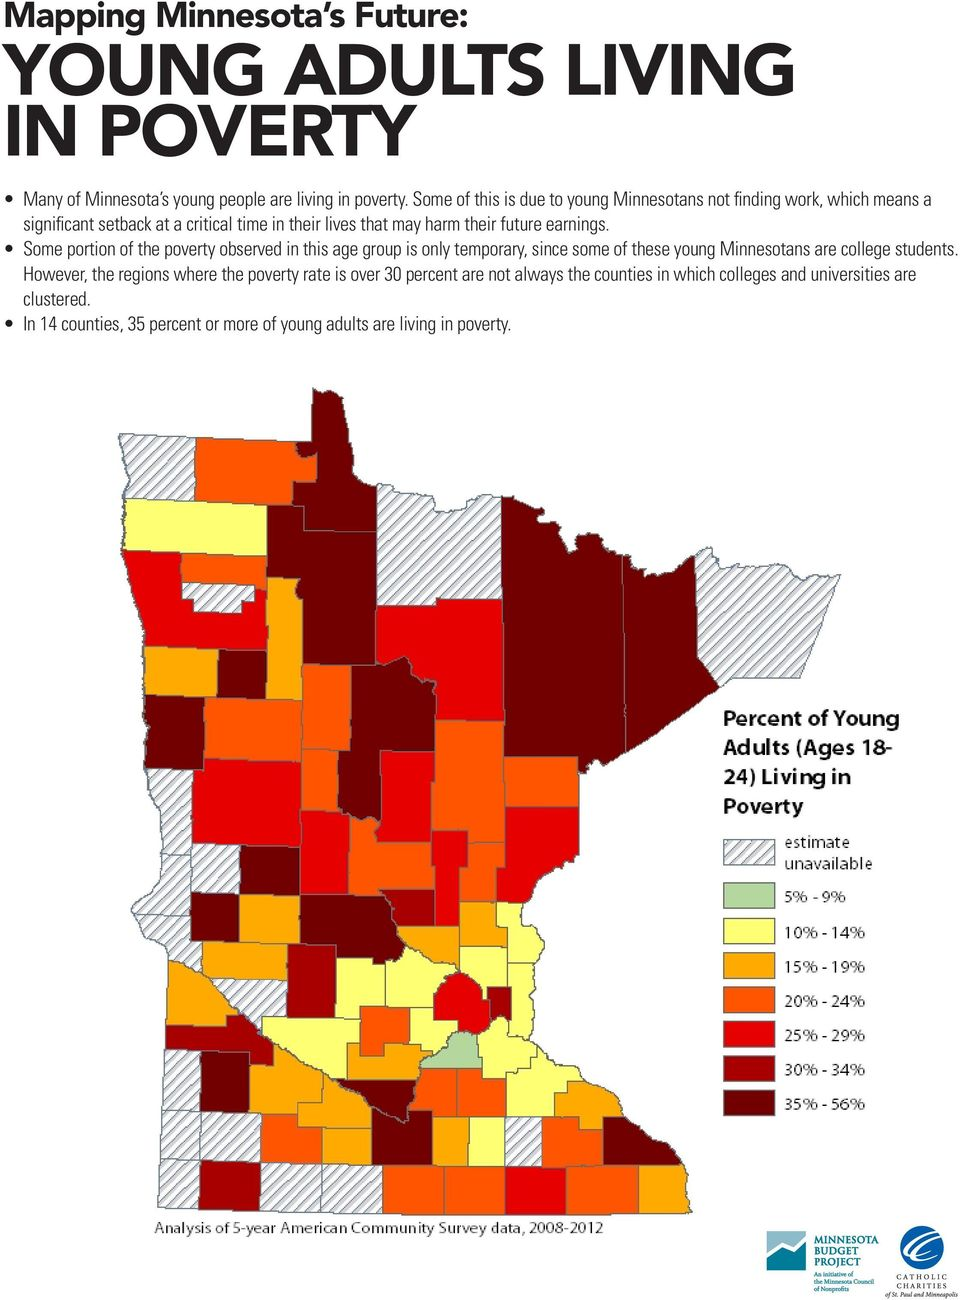 future earnings. Some portion of the poverty observed in this age group is only temporary, since some of these young Minnesotans are college students.